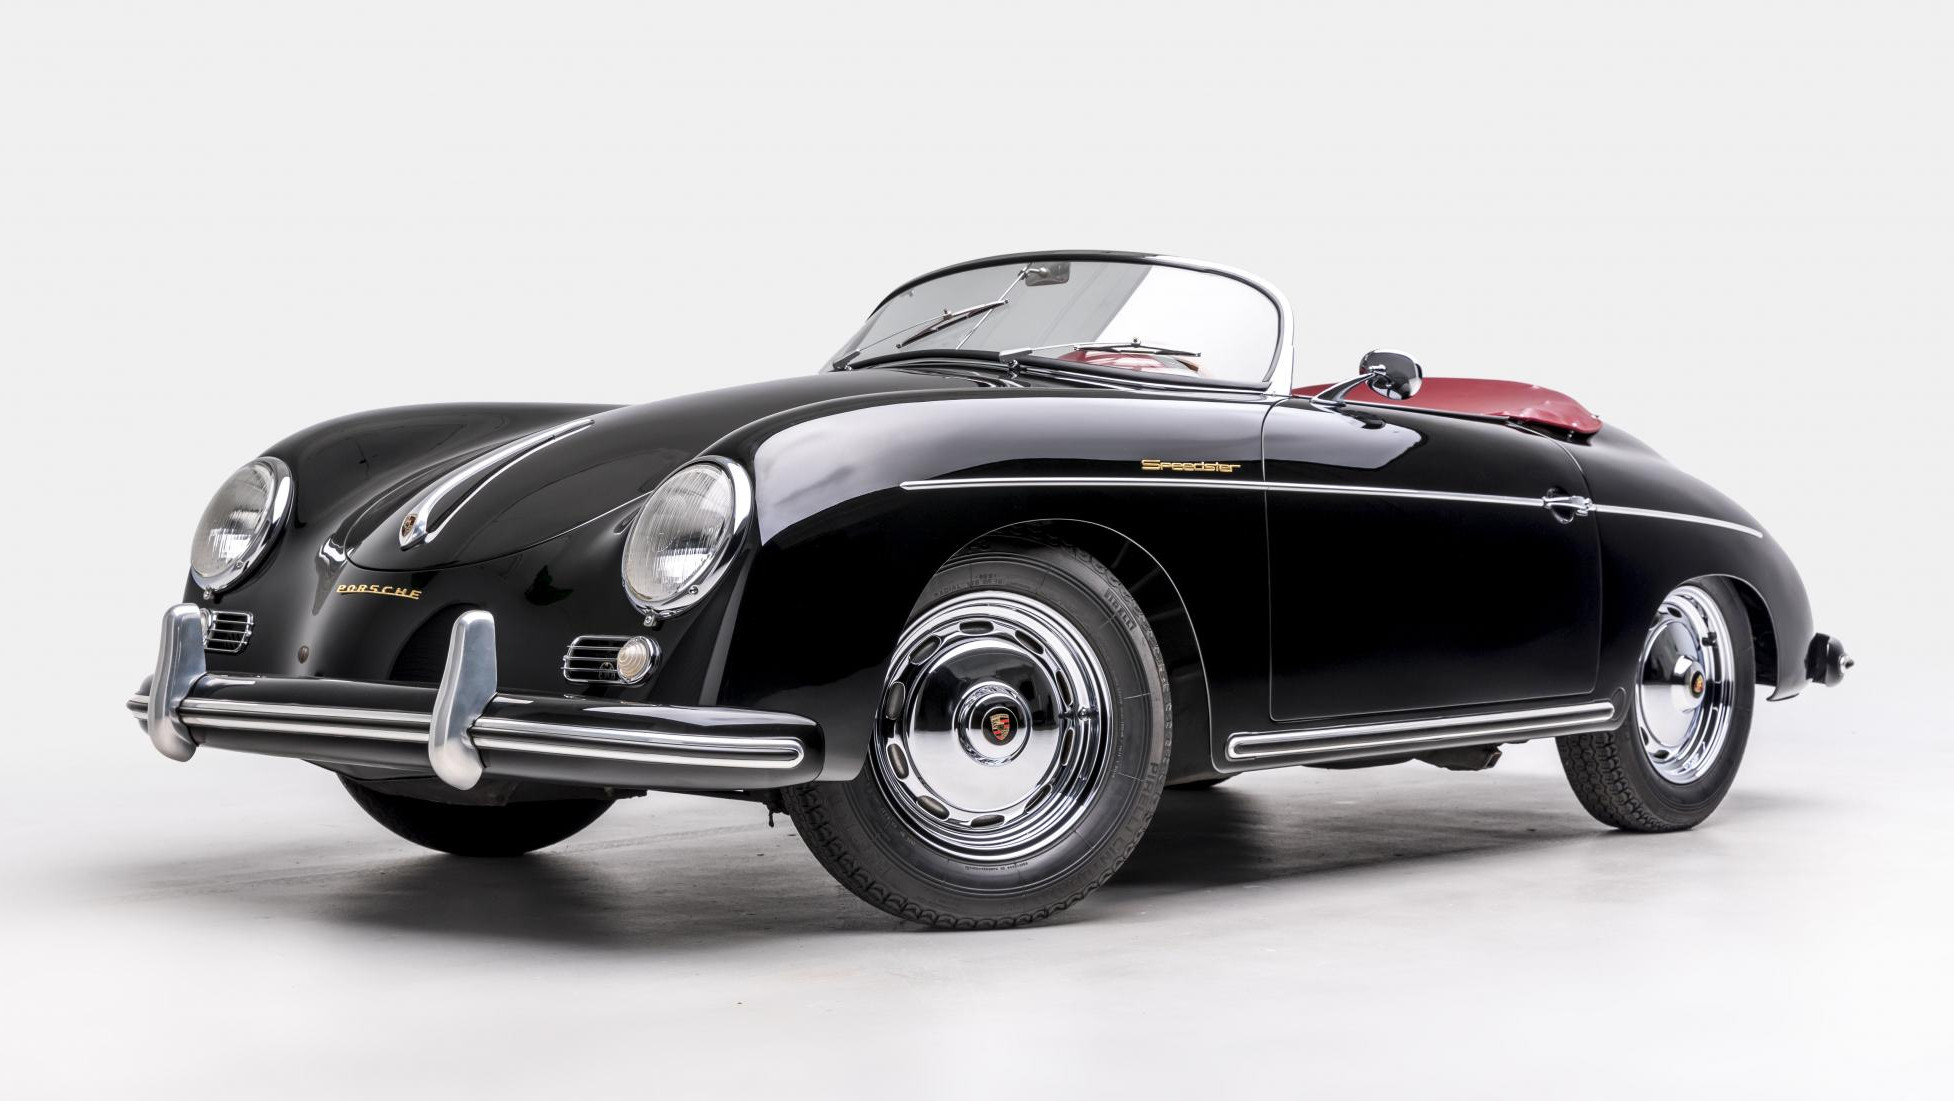 Porsche is 3D Printing Metal and Plastic Spare Parts for Classic Cars | All3DP